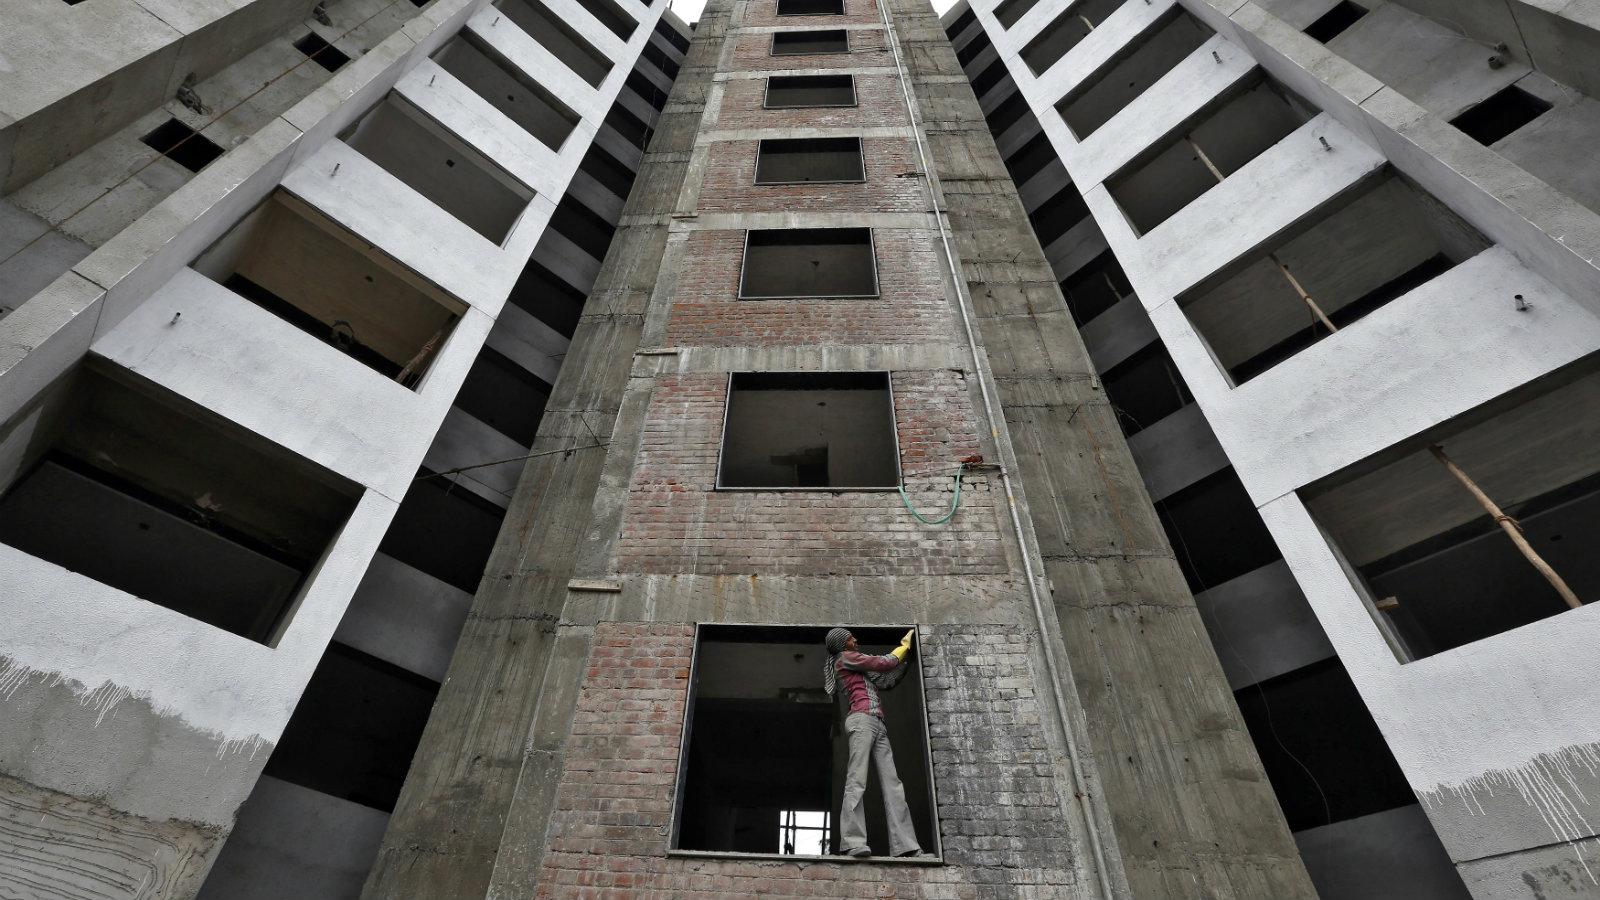 A labourer works at the construction site of a residential complex in the western Indian city of Ahmedabad October 31, 2014. India's fiscal deficit was 4.39 trillion rupees ($71.5 billion) during April-September, or 82.6 percent of the full-year target, government data showed on Friday.